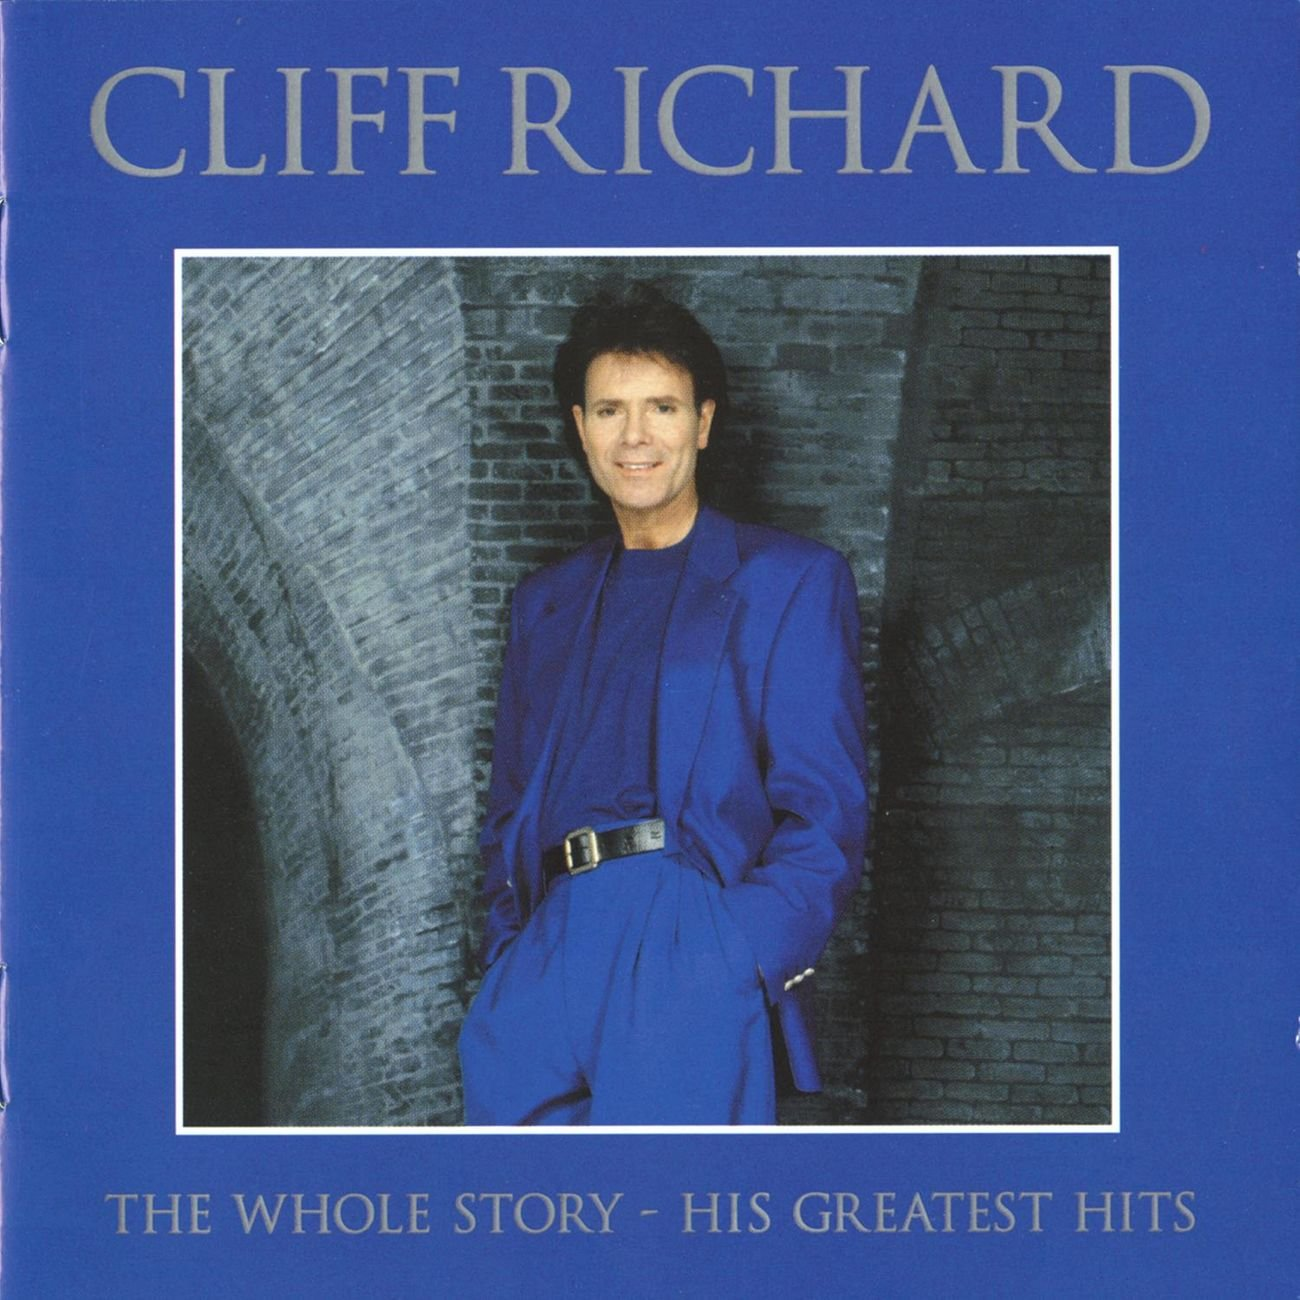 Cliff Richard - Whole Story: His Greatest Hits by EMI Import